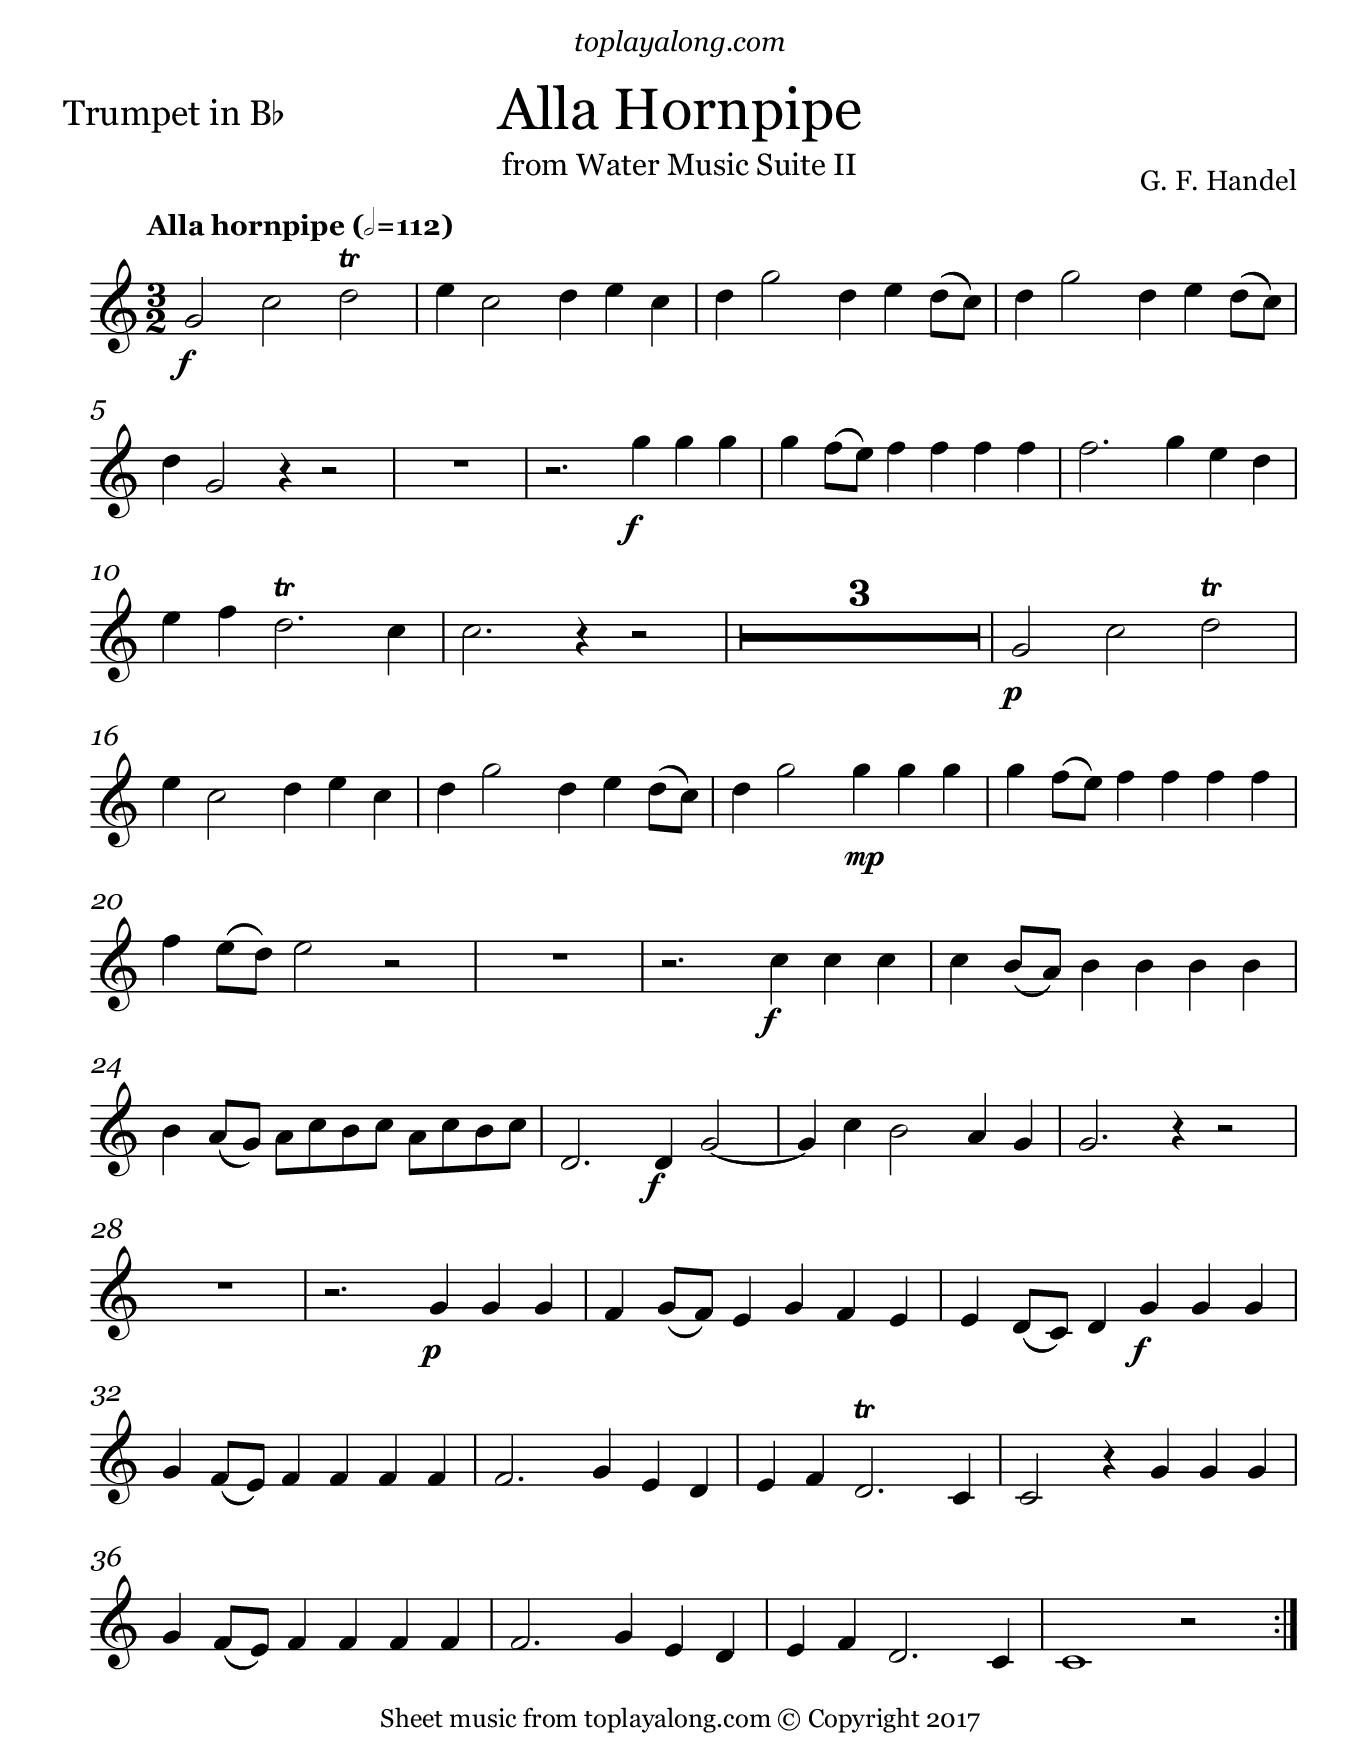 Free Trumpet Sheet Music For Alla Hornpipe From Water Music Suite Ii By Handel With Backing Tracks To Play Along Trumpet Sheet Music Flute Music Sheet Music